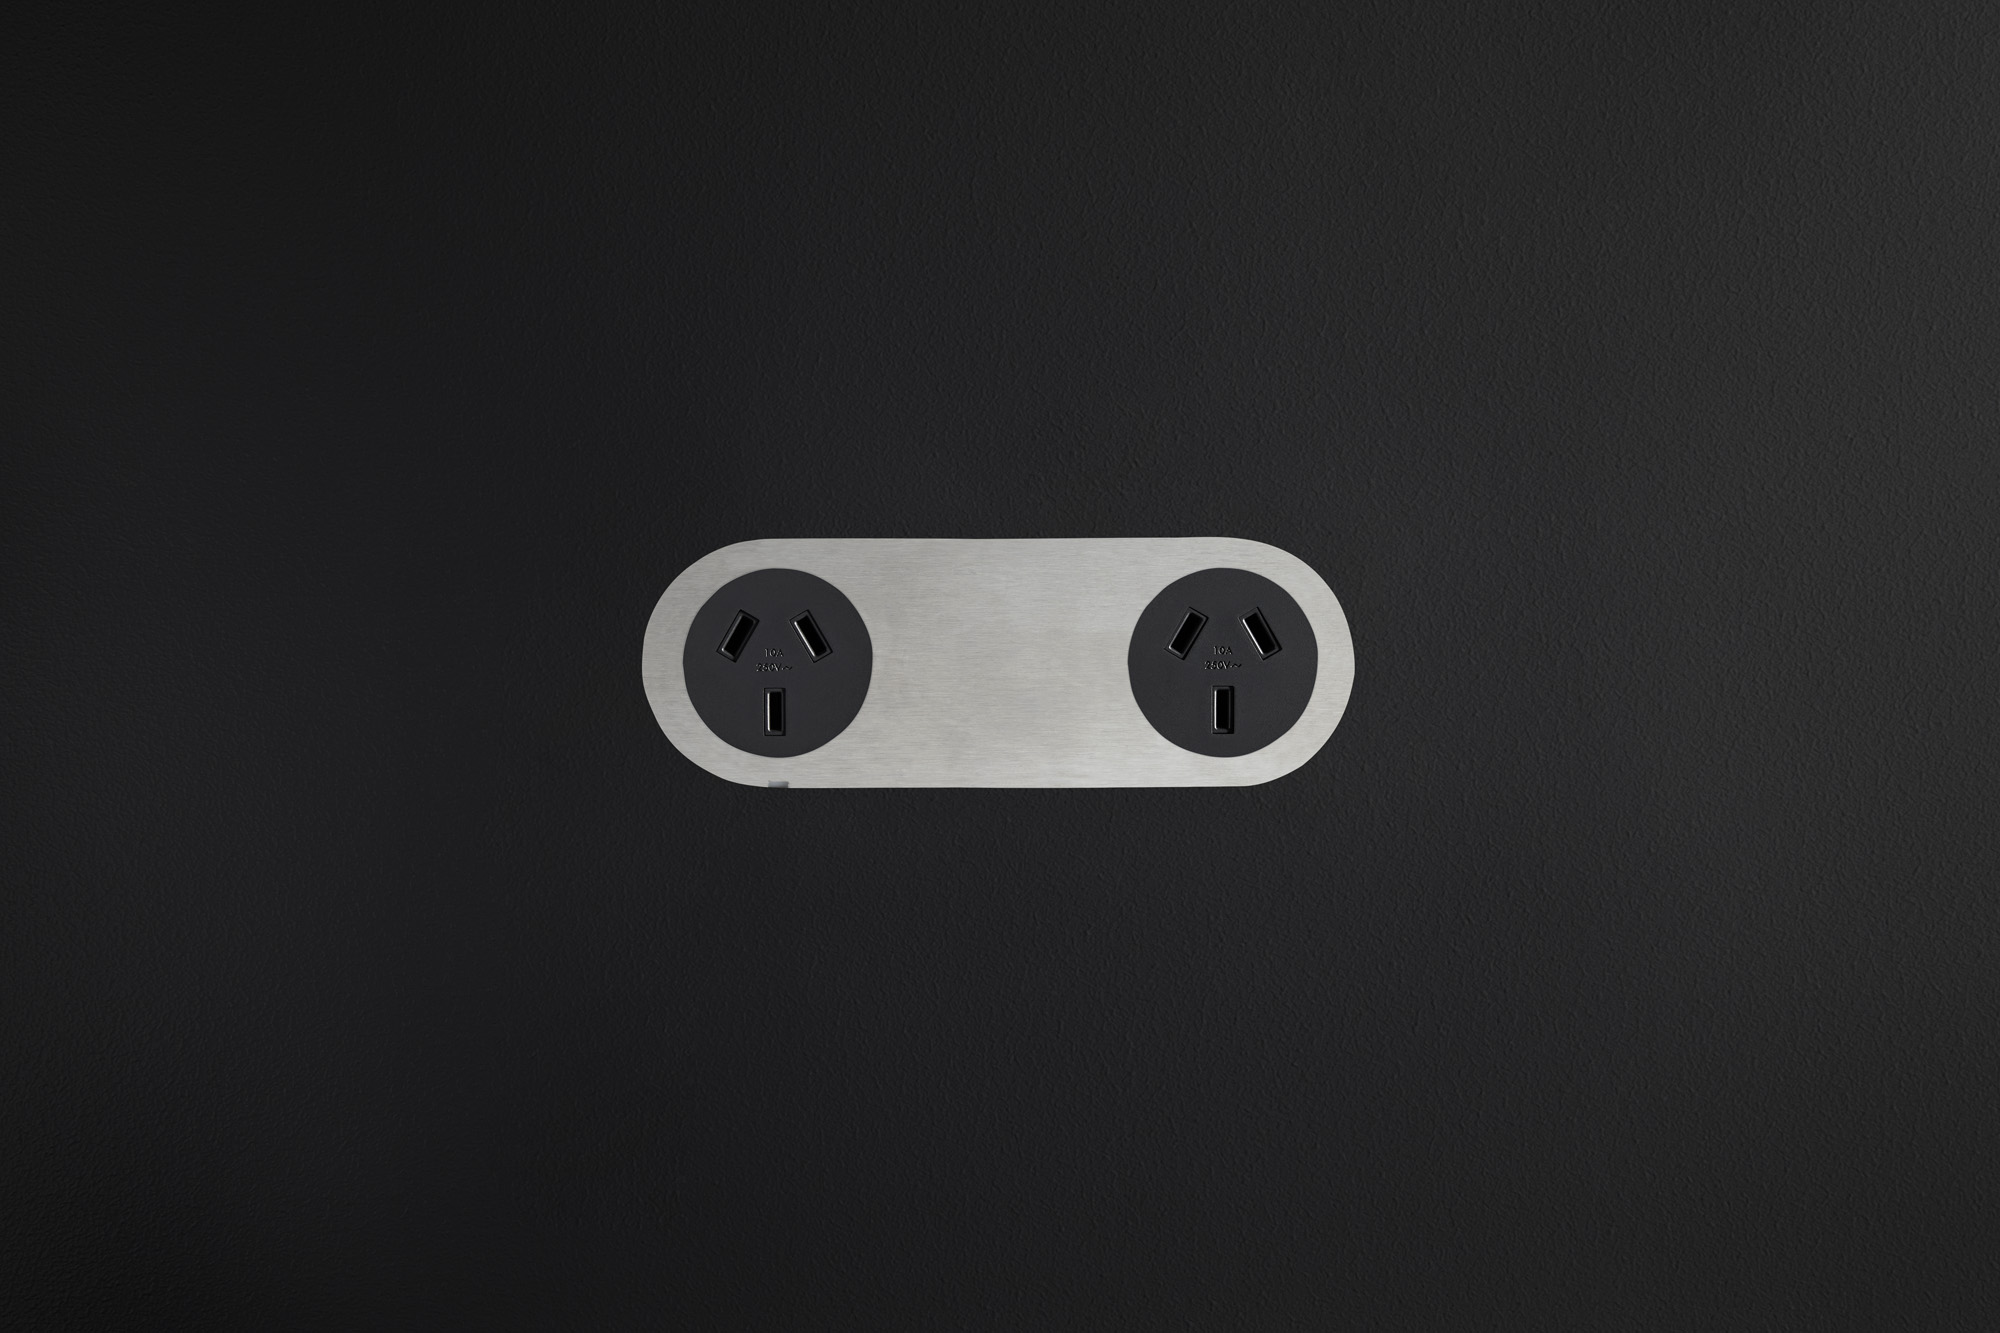 Double_Outlet_Stainless_Silver_Black_Outlet_Black_Board.jpg